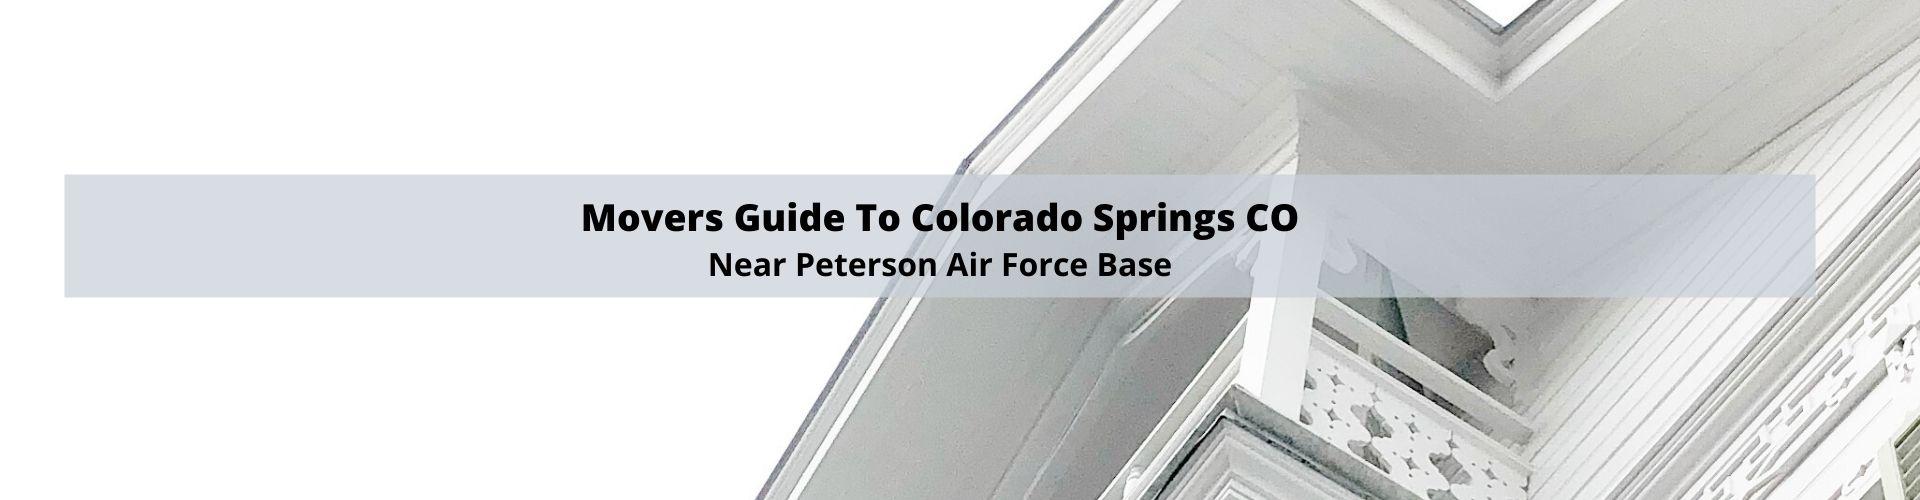 Movers Guide to Peterson Air Force Base Colorado Springs CO